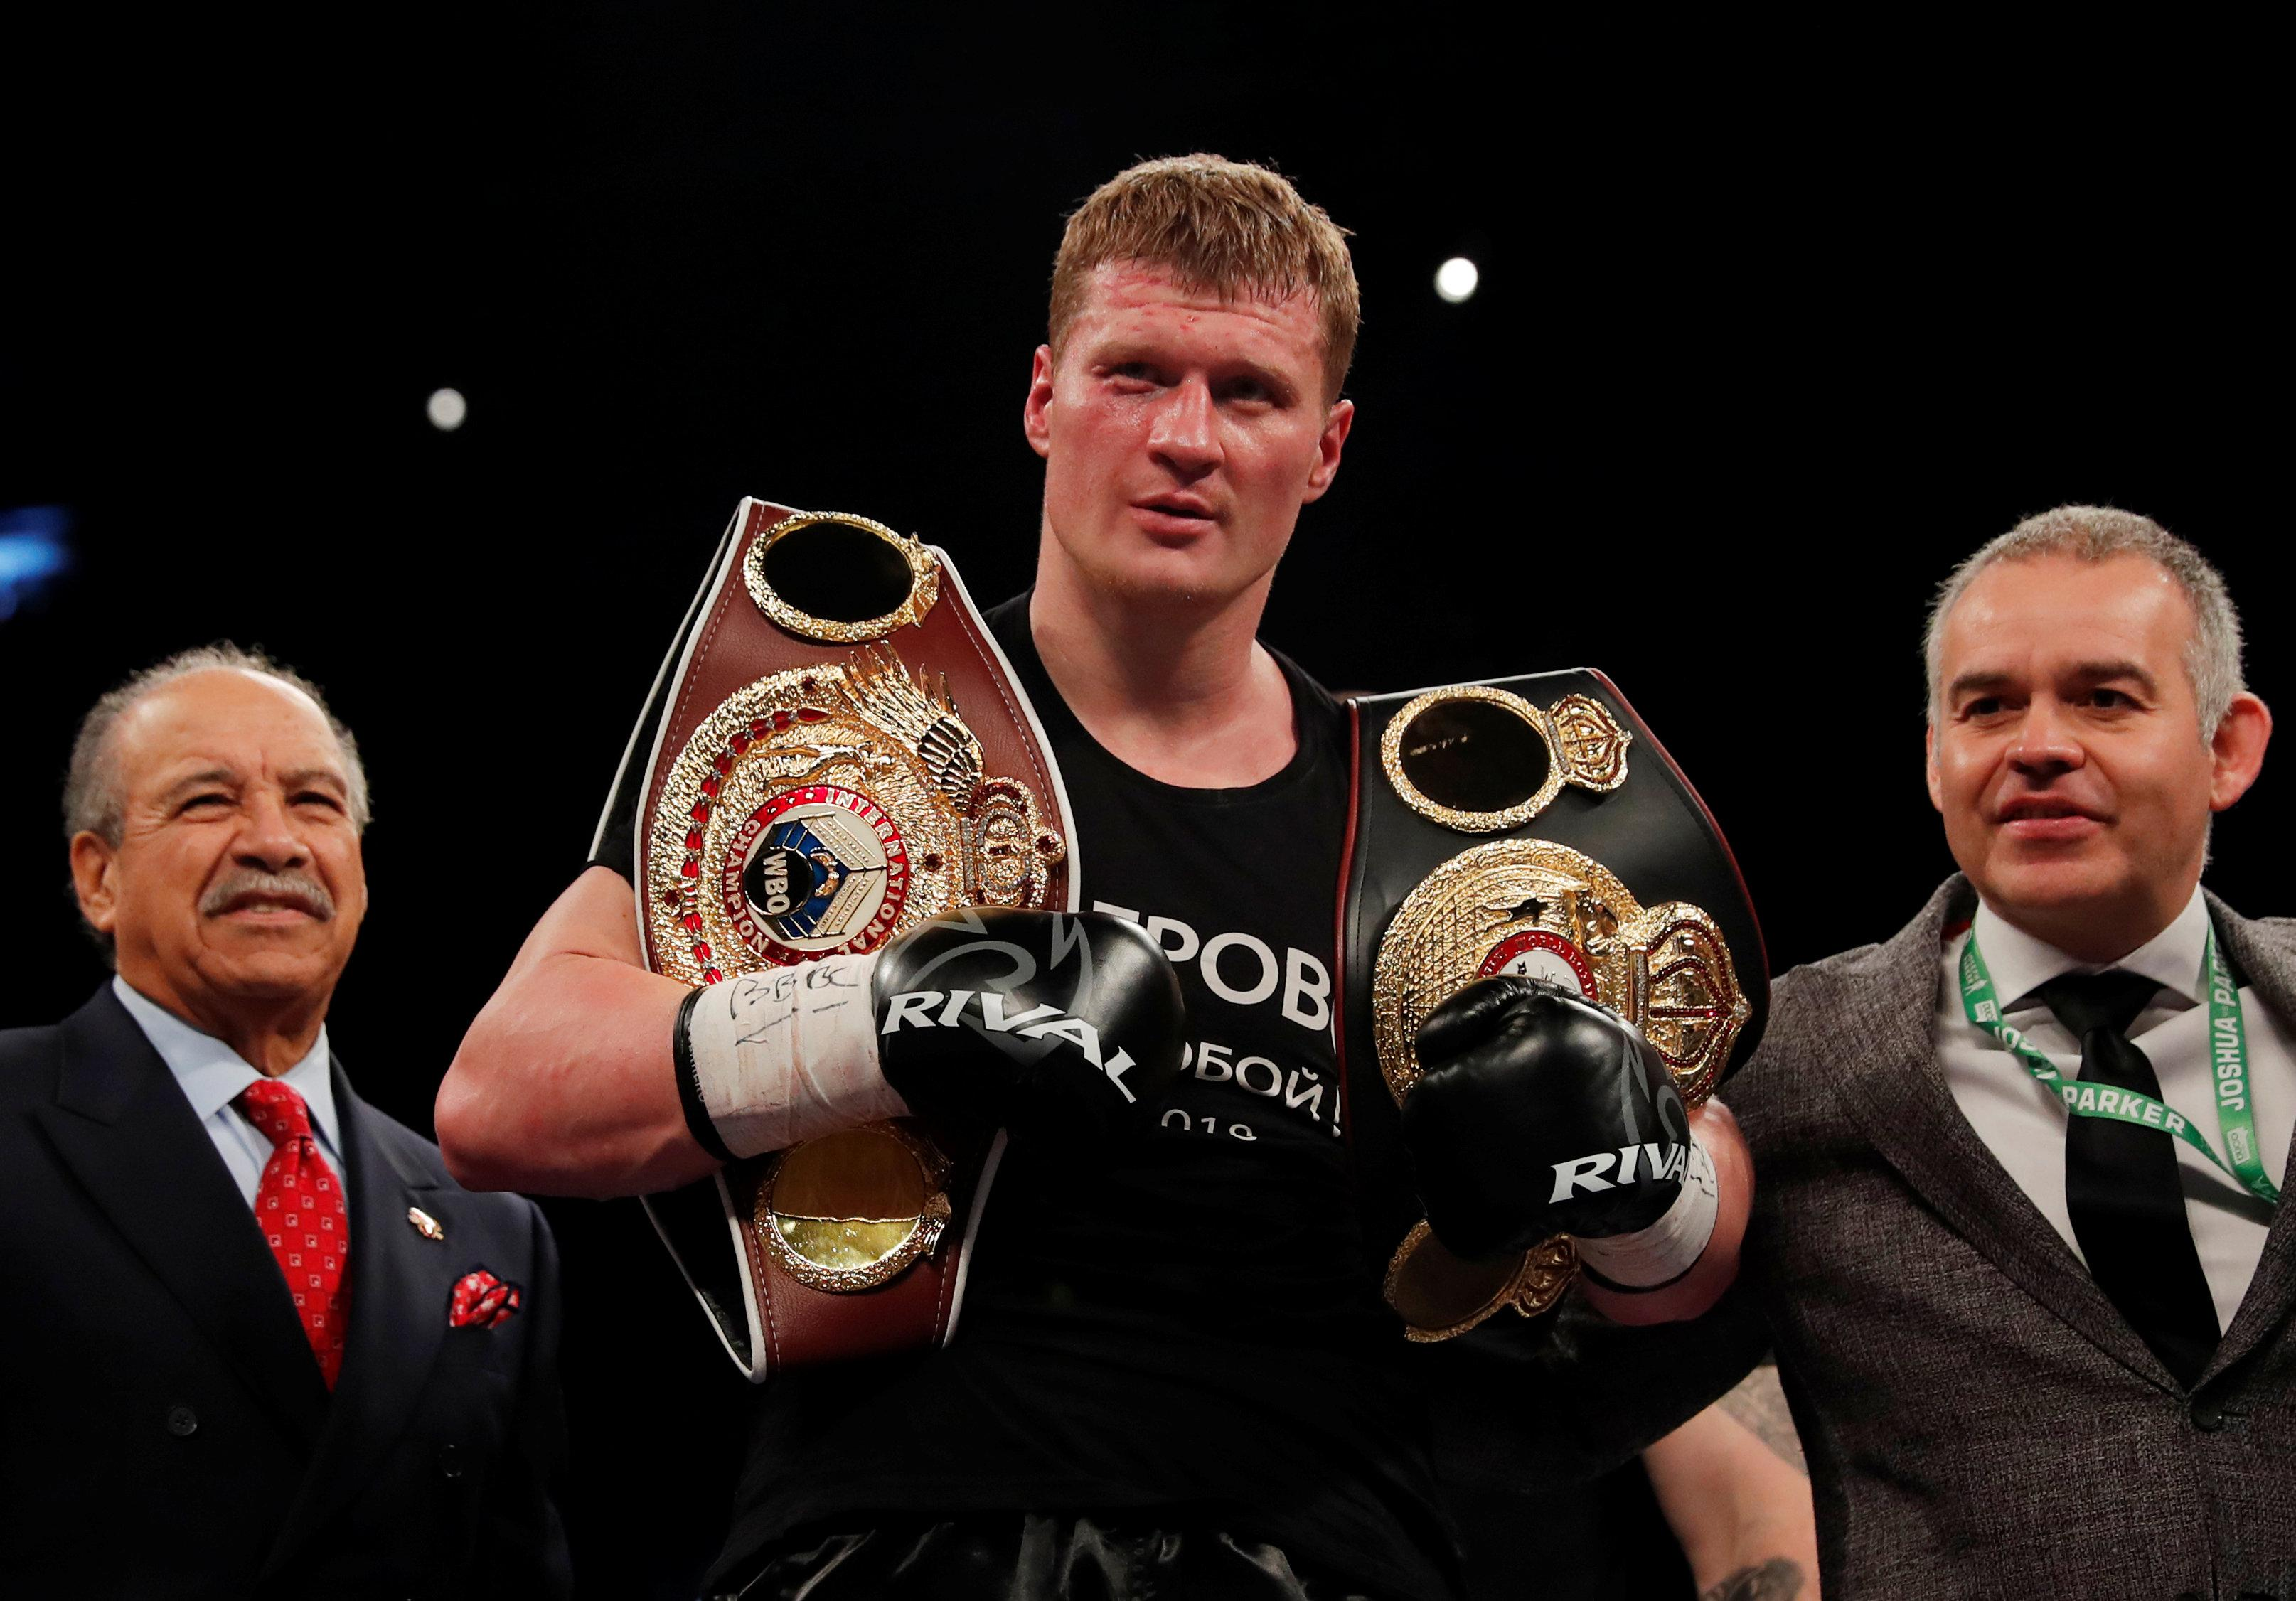 Promoter Eddie Hearn says Joshua is more likely to take on Alexander Povetkin